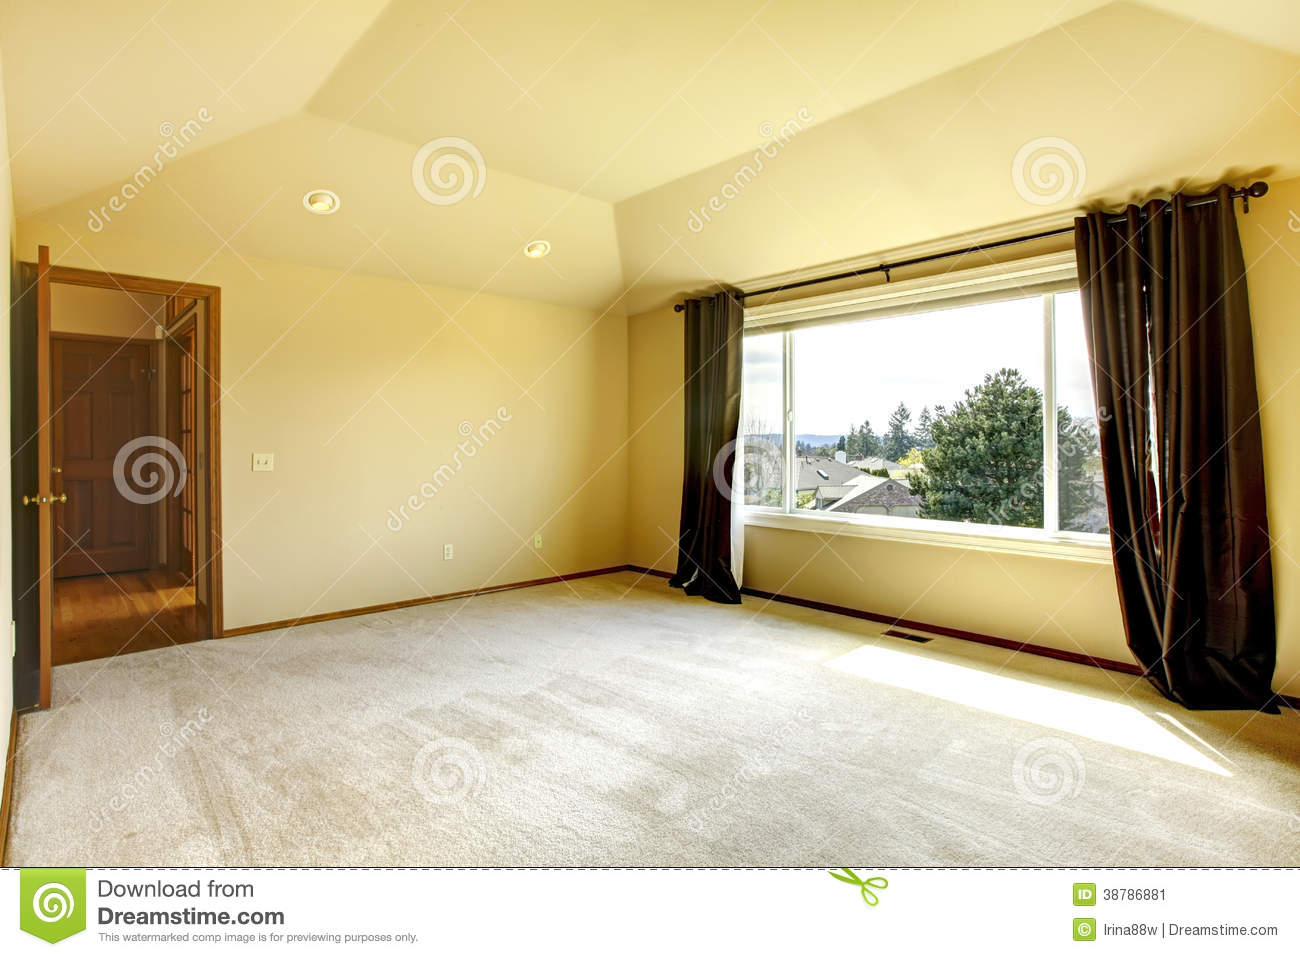 Simple 2 bedroom home plans - Empty Bedroom Stock Photo Image 38786881